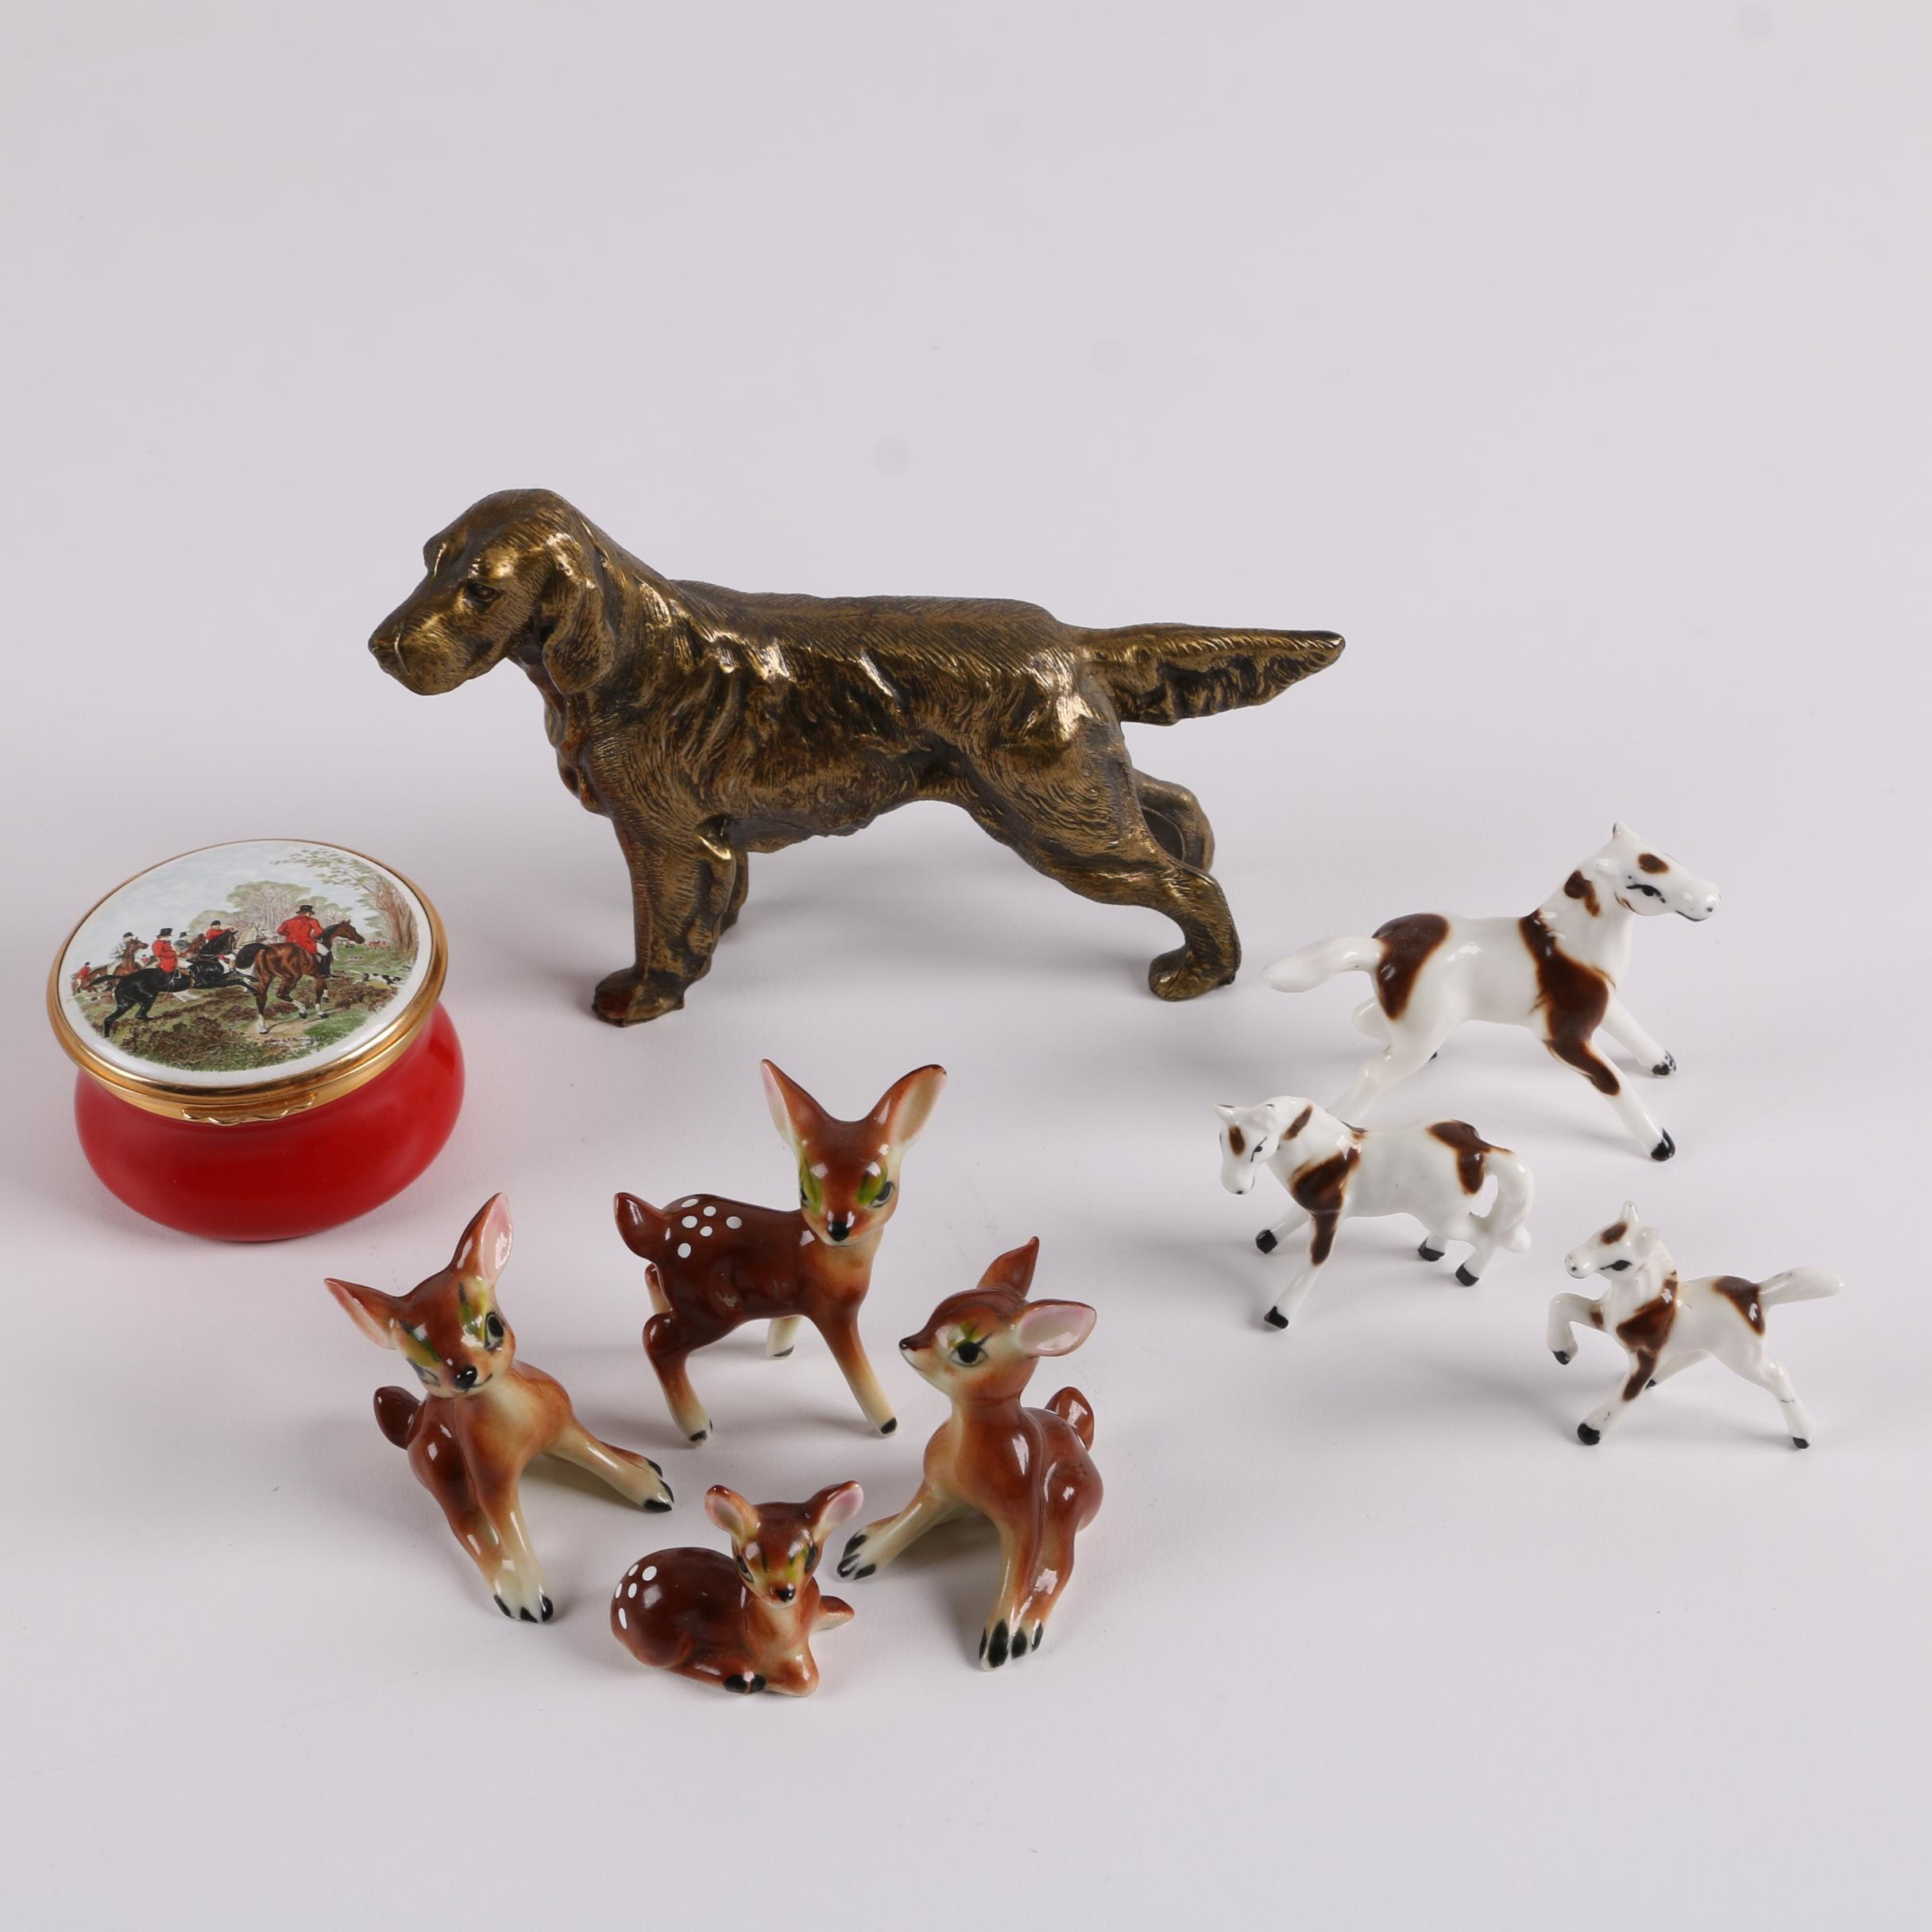 Ceramic and Brass Animal Figurines with Enameled Hunting Themed Trinket Box